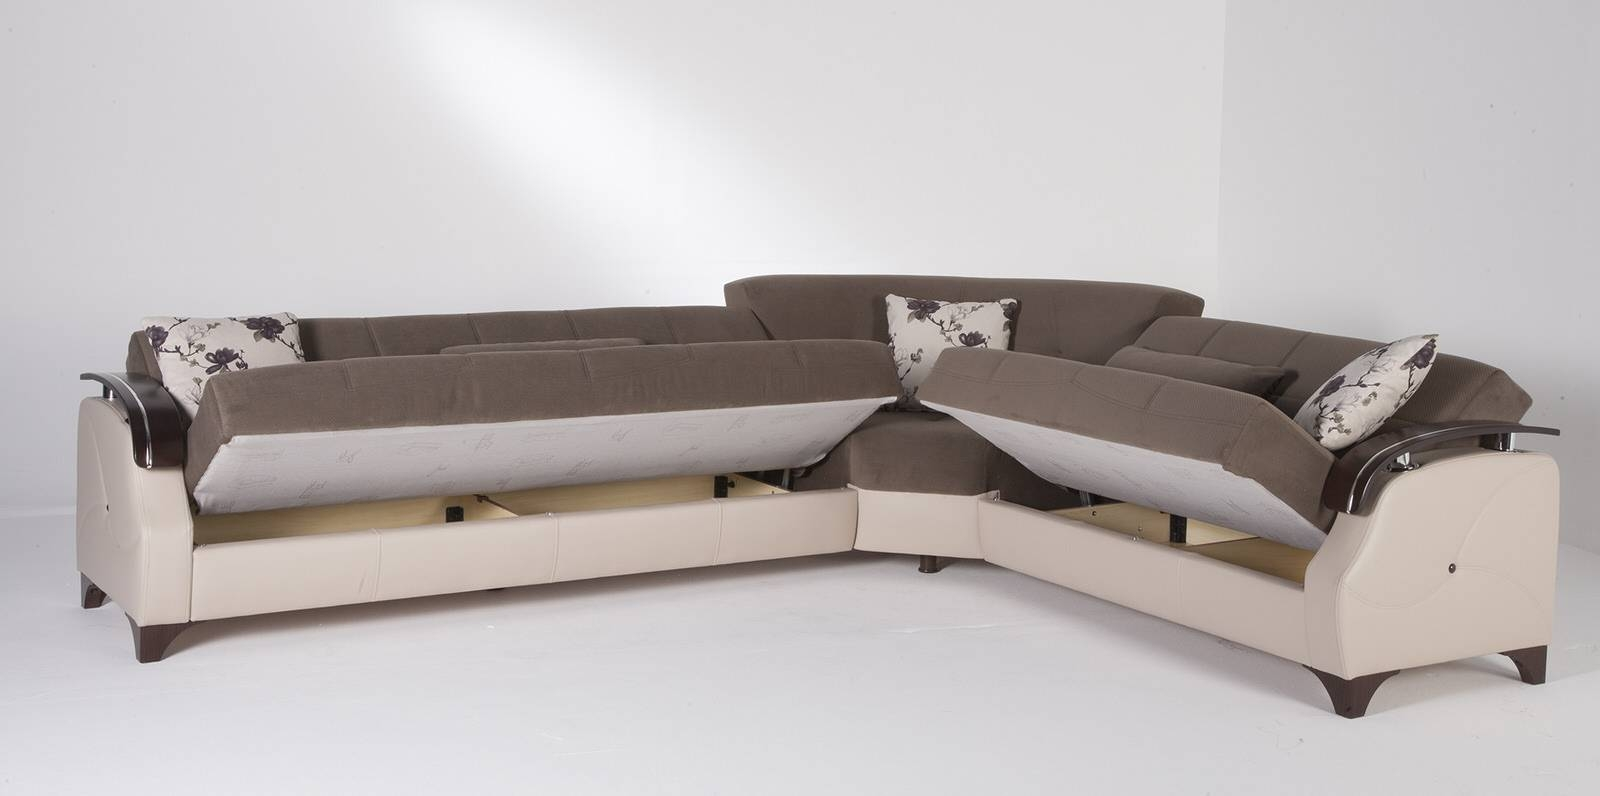 Trento Selen Brown Sectional Sofasunset intended for Sectional Sofa Beds (Image 27 of 30)